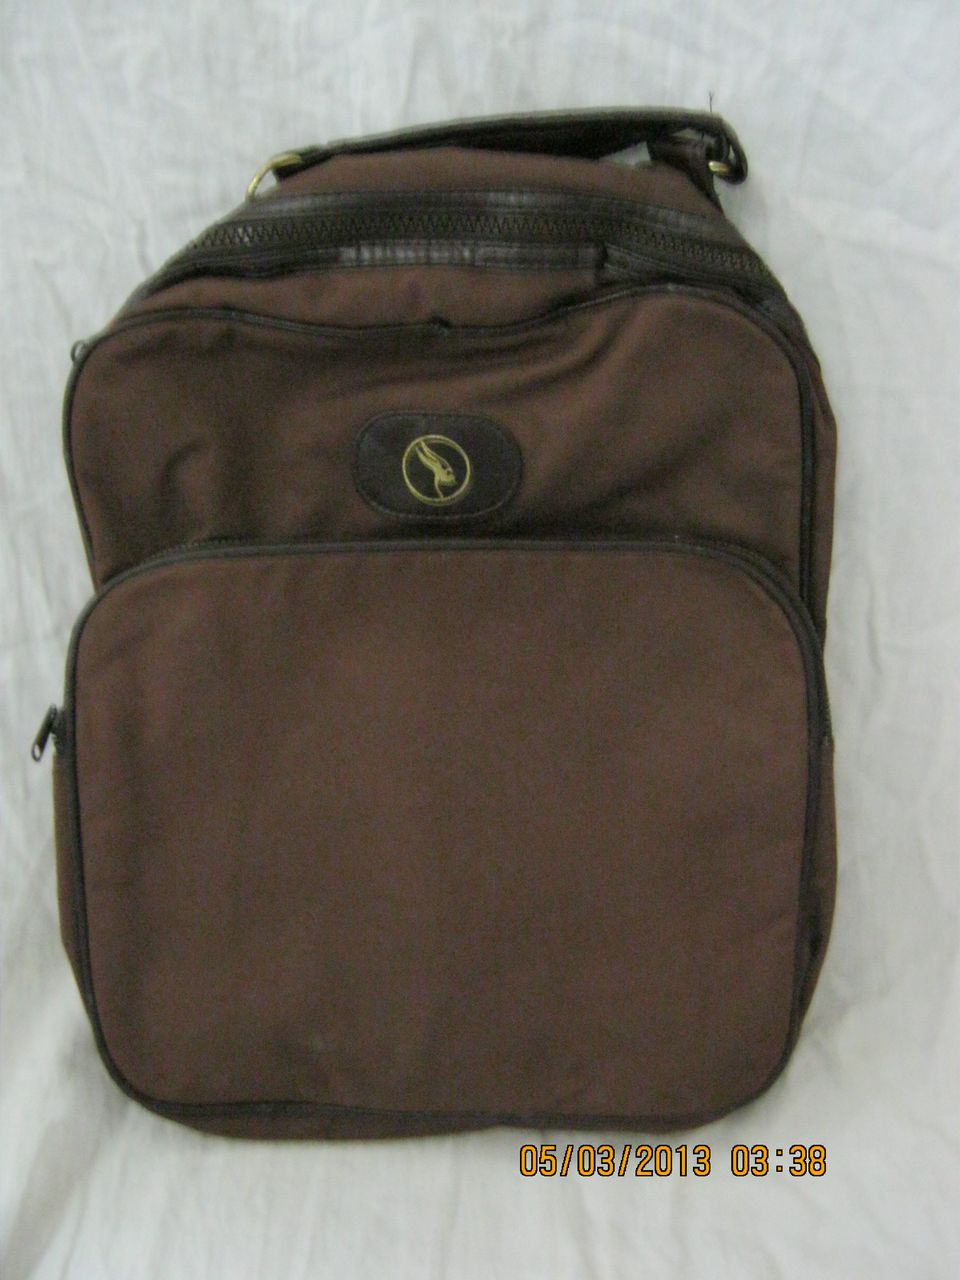 QANTAS cloth Cabin Bag